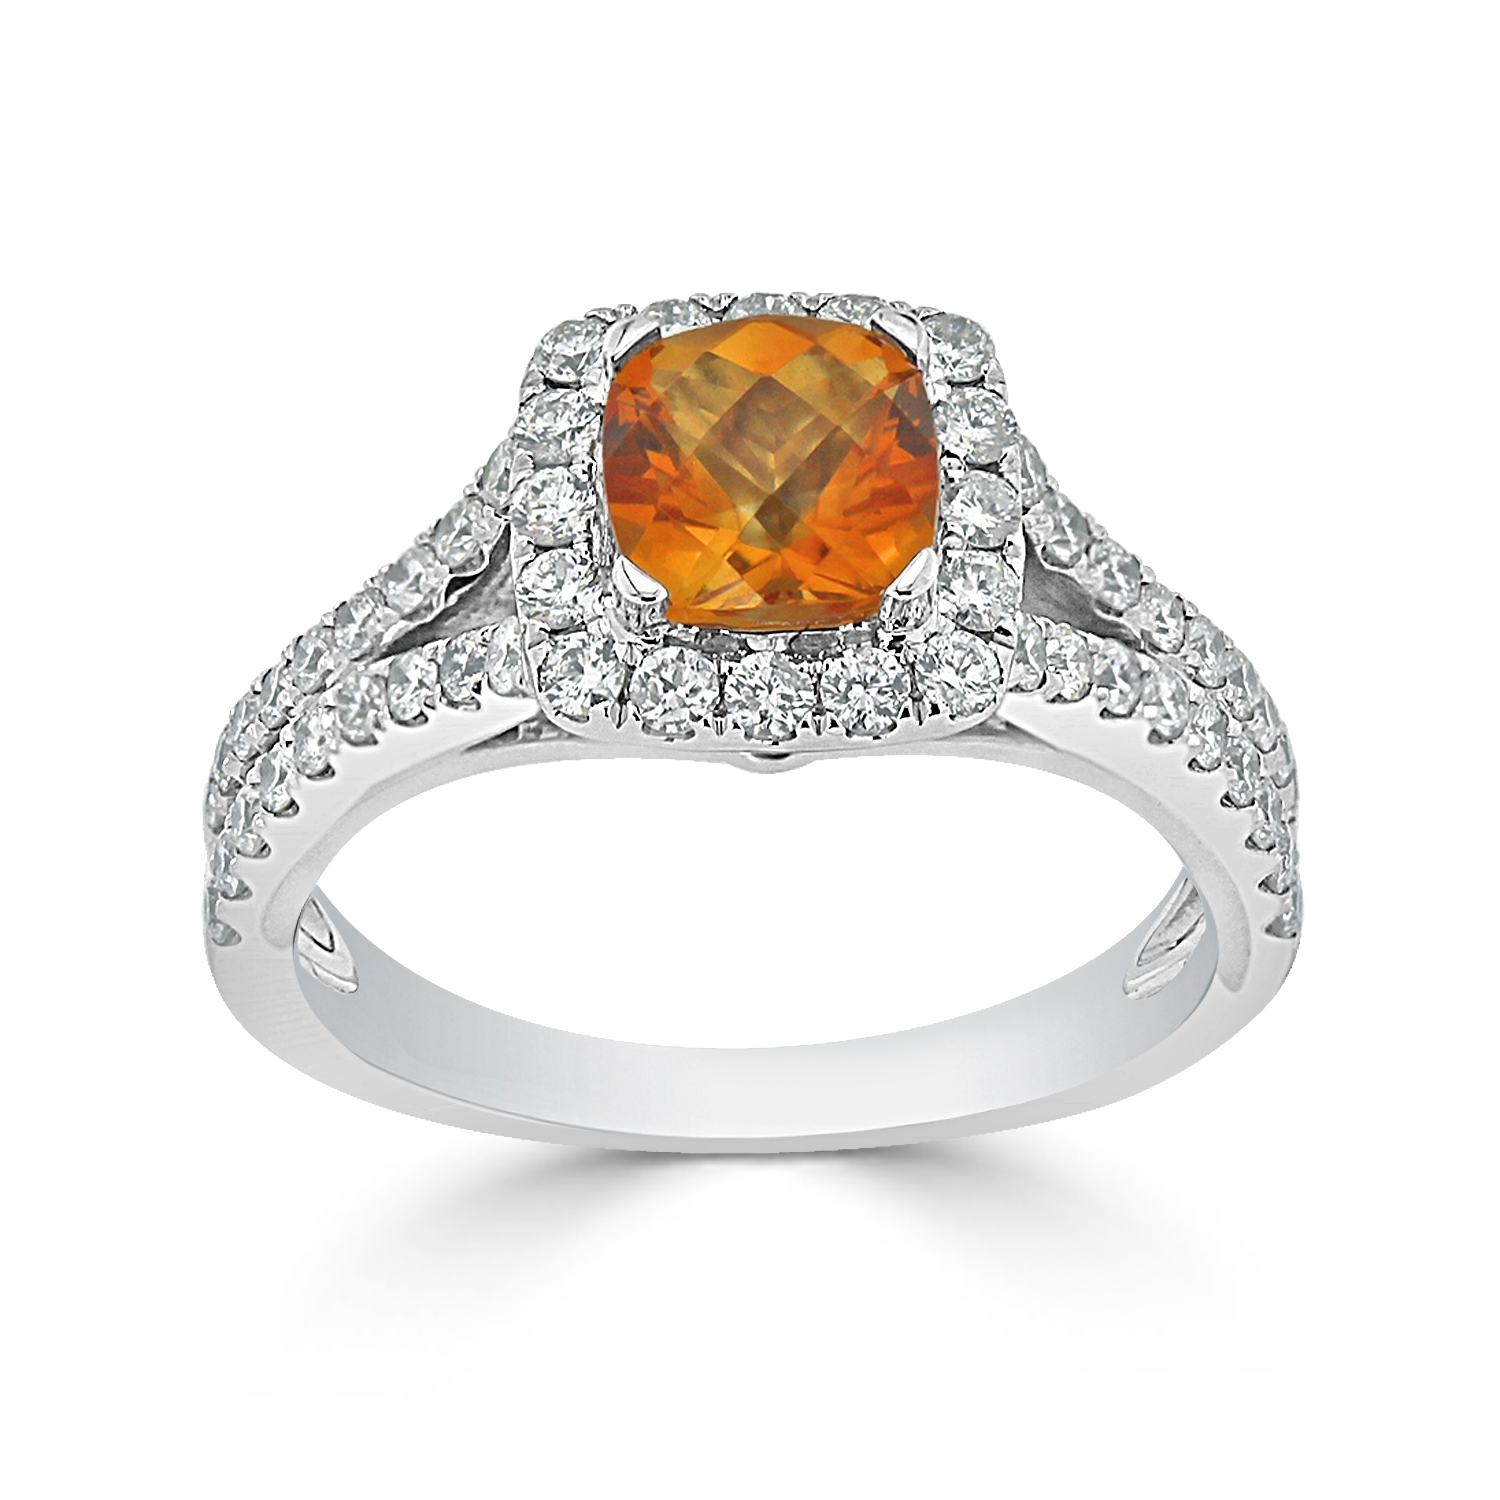 Halo Citrine Diamond Ring in 14K White Gold with 0.90 carat Cushion Citrine